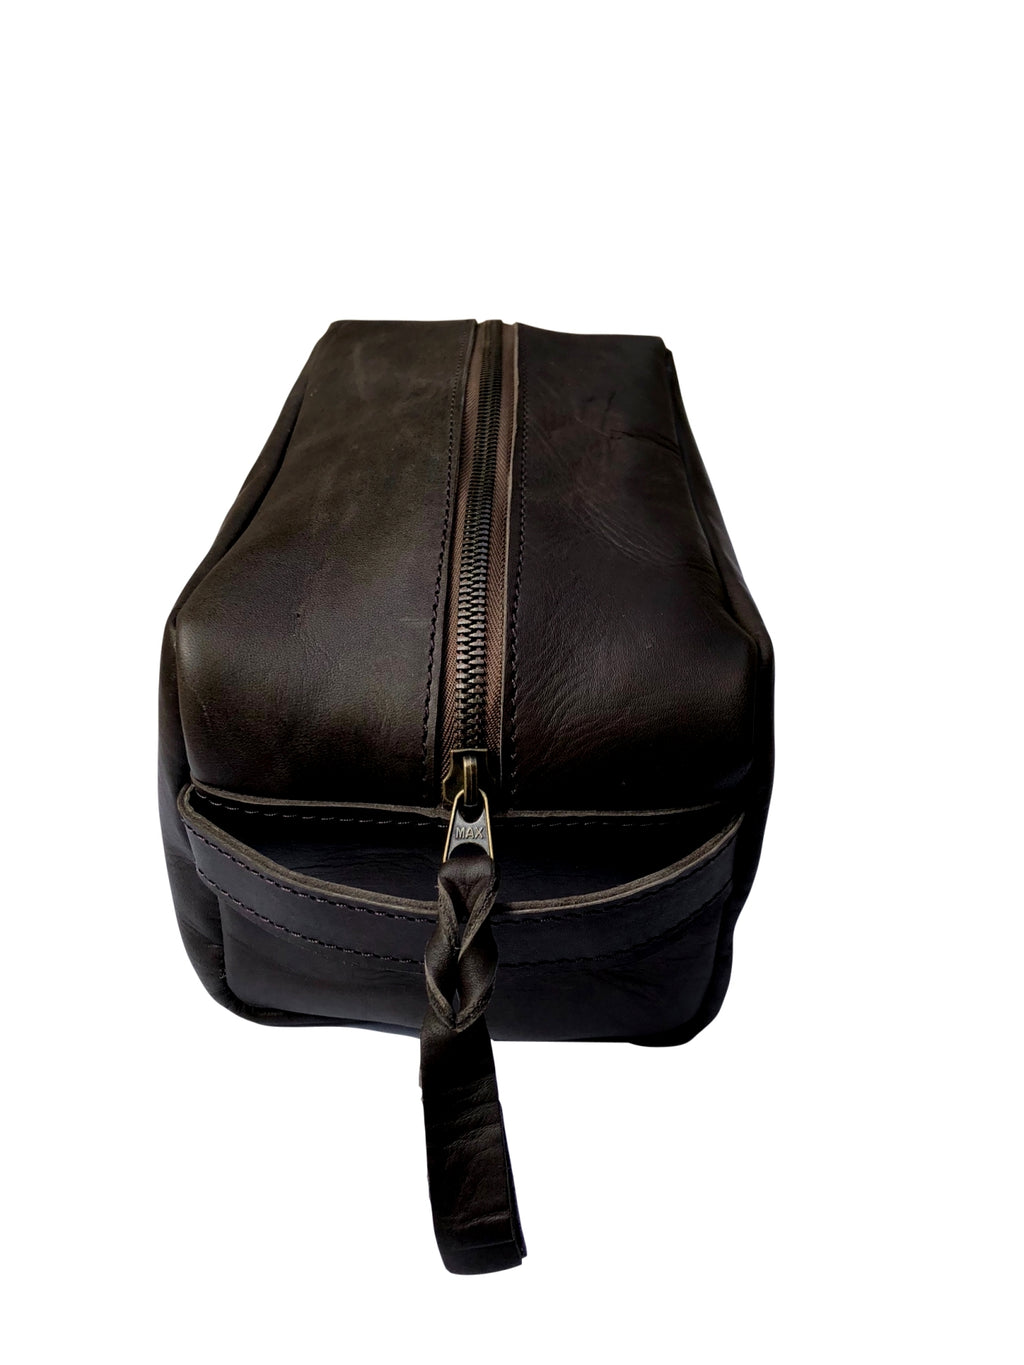 Leather Toiletry Dopp Kit - Mocha